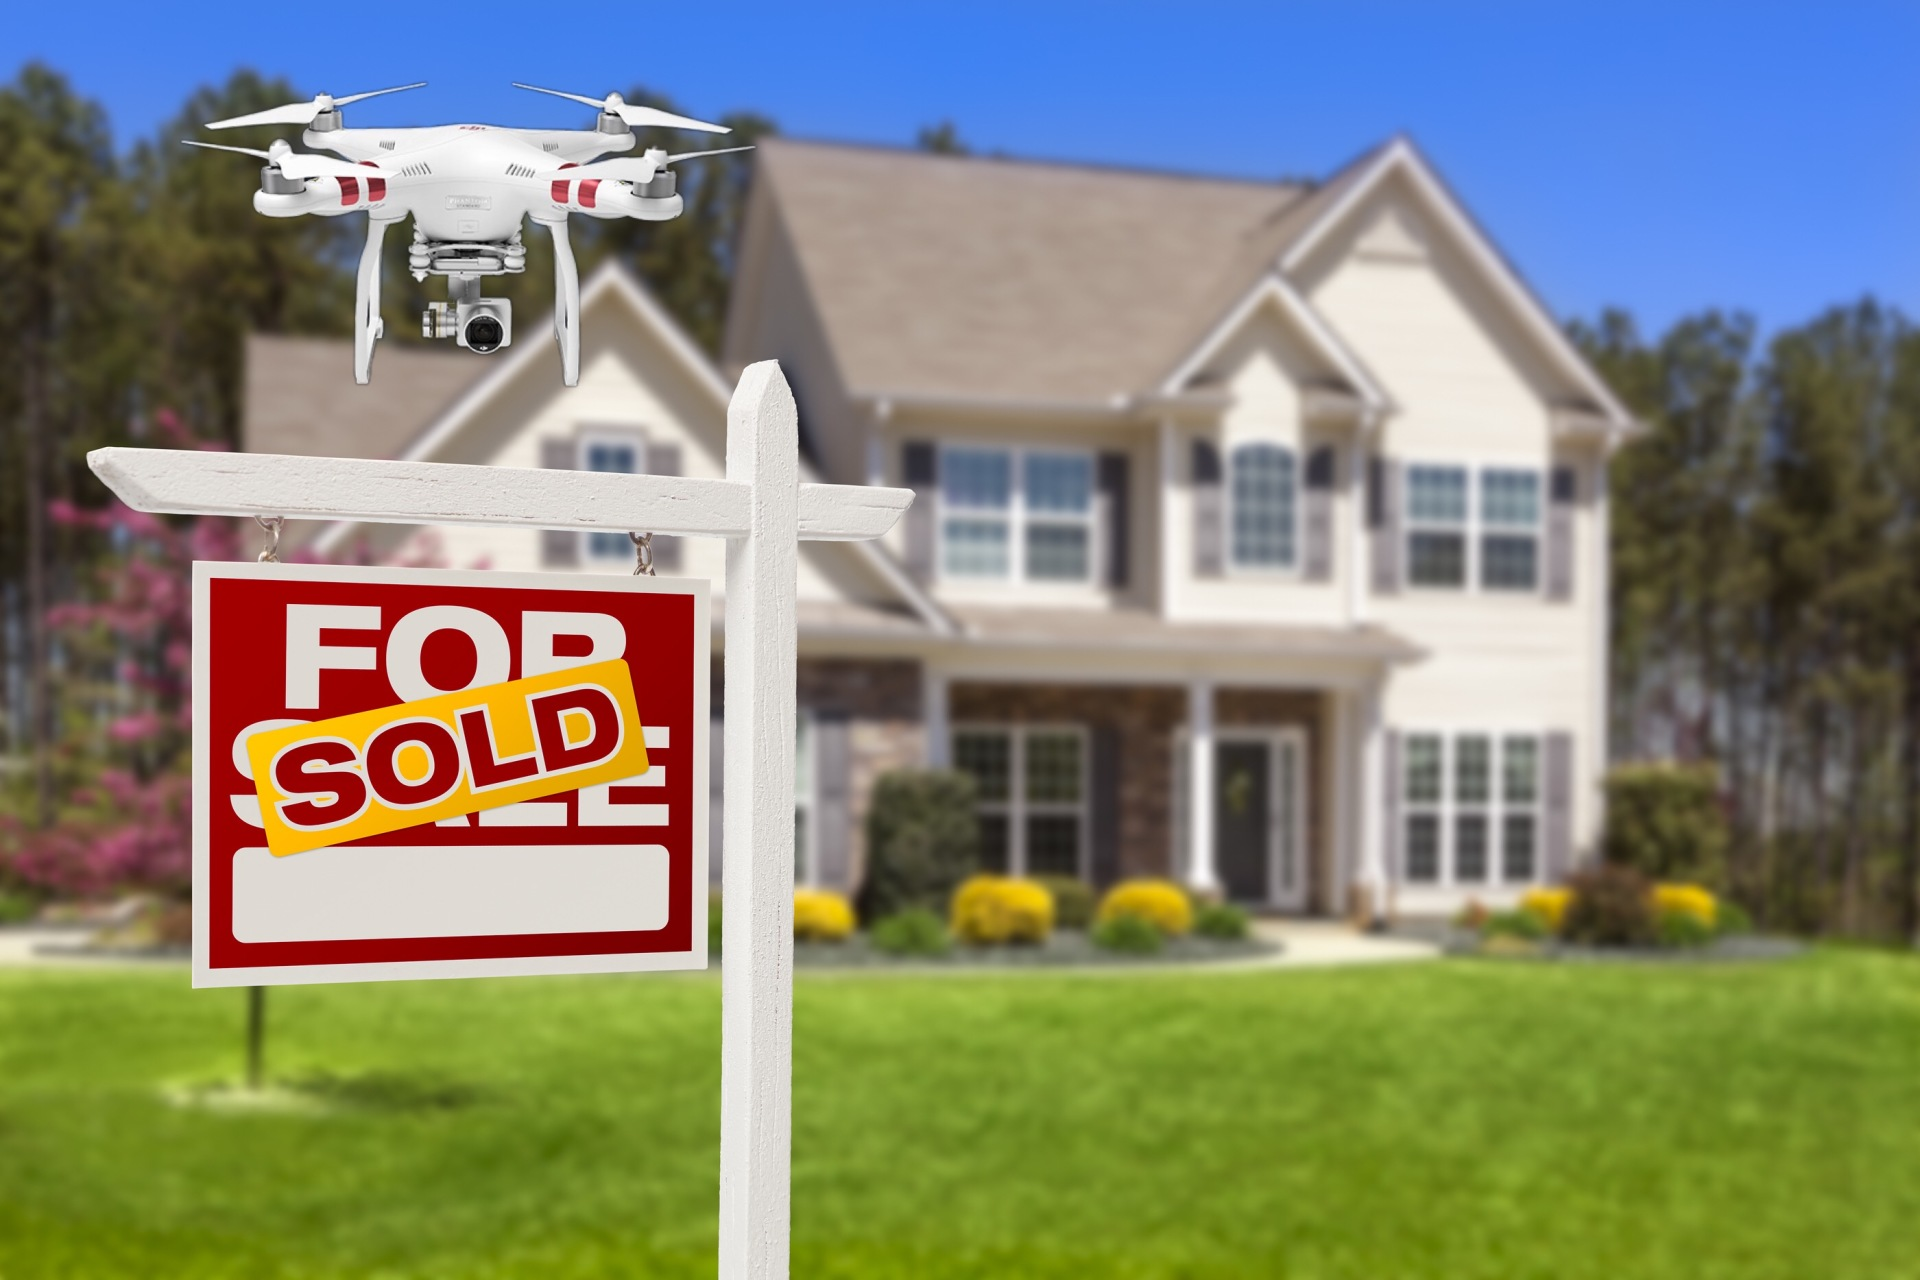 Realtors Being Fined for Illegal Drone Use?!?!